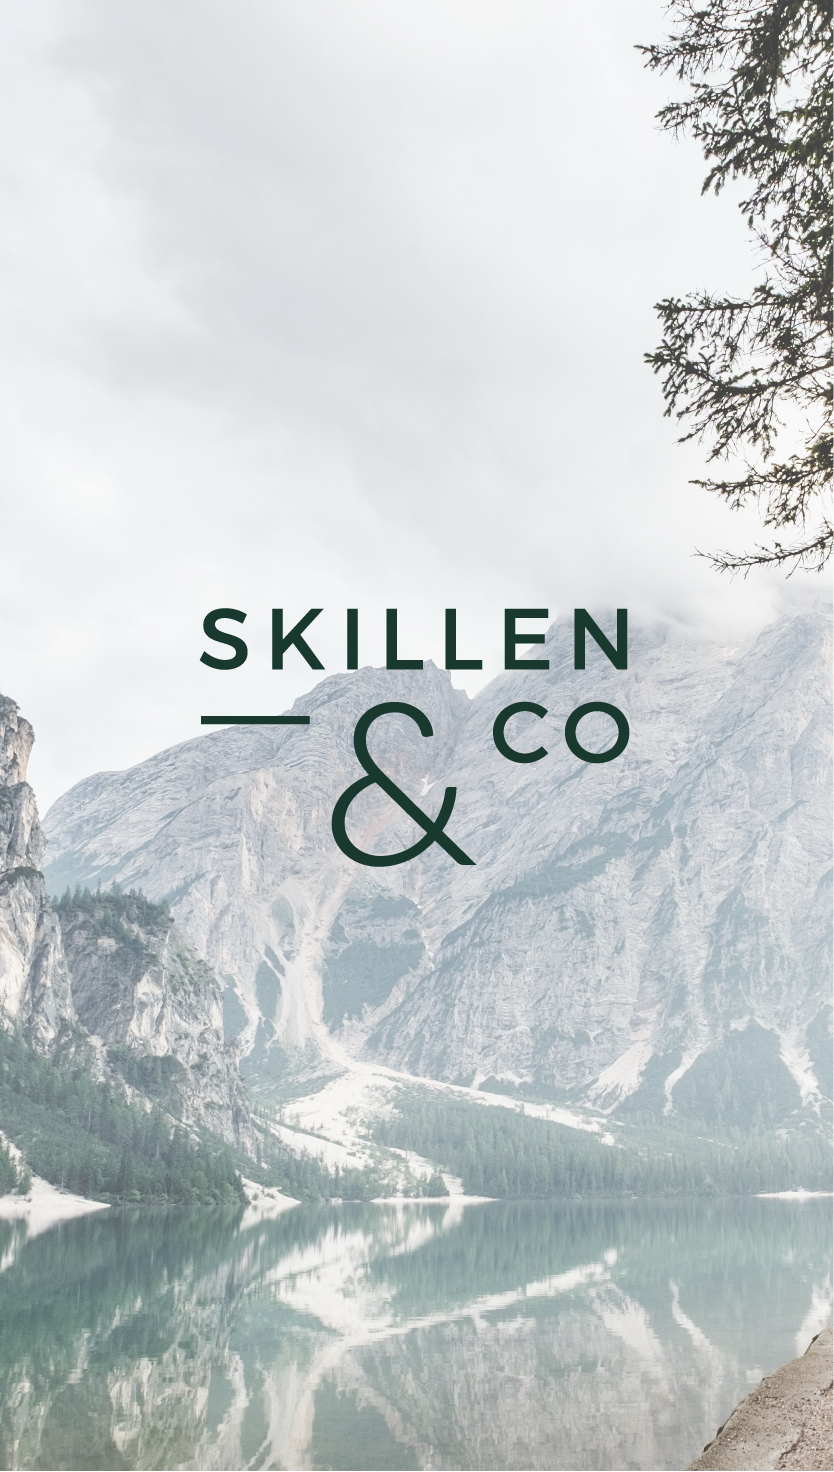 Brand Design for video production company Skillen & Co by Salt Design Co. in Vancouver BC